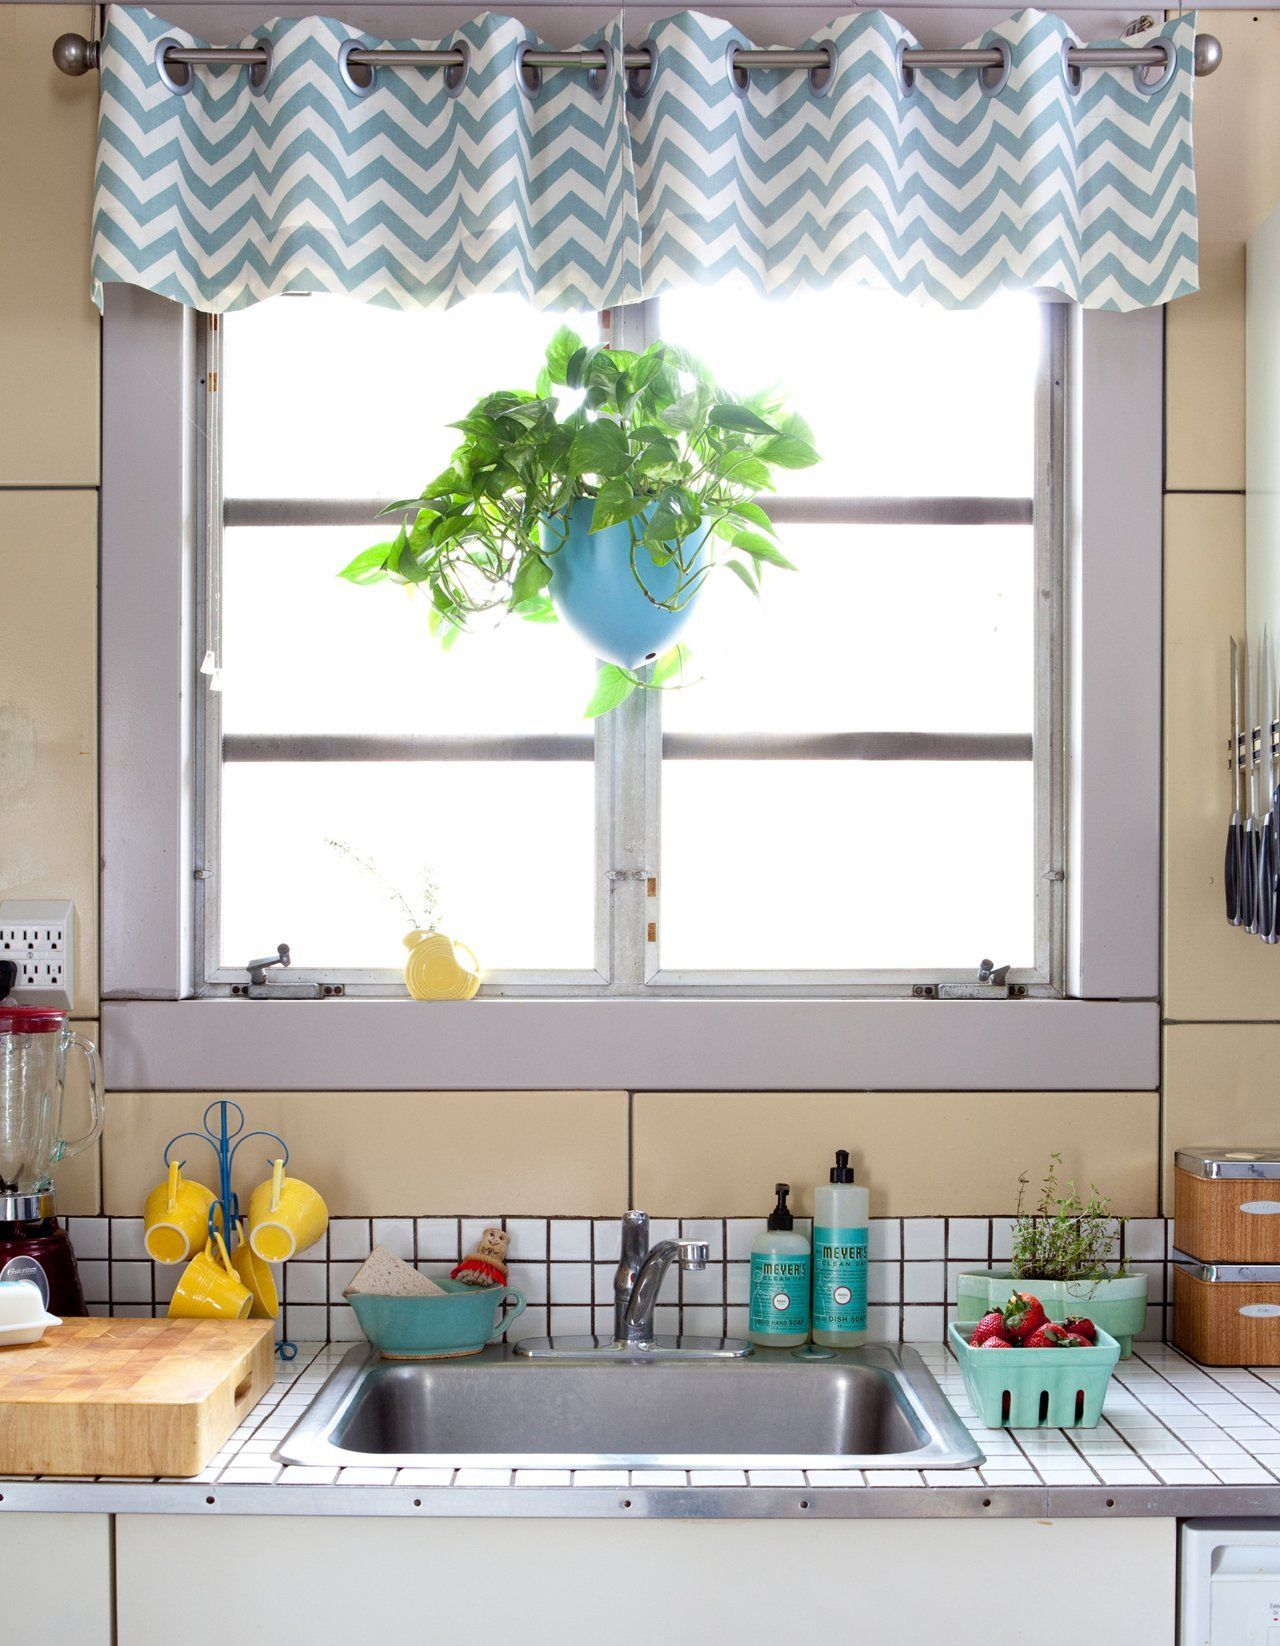 Rustic kitchen window treatments  jeaneeus sunny vintage kitchen  home  rustic  pinterest  vintage